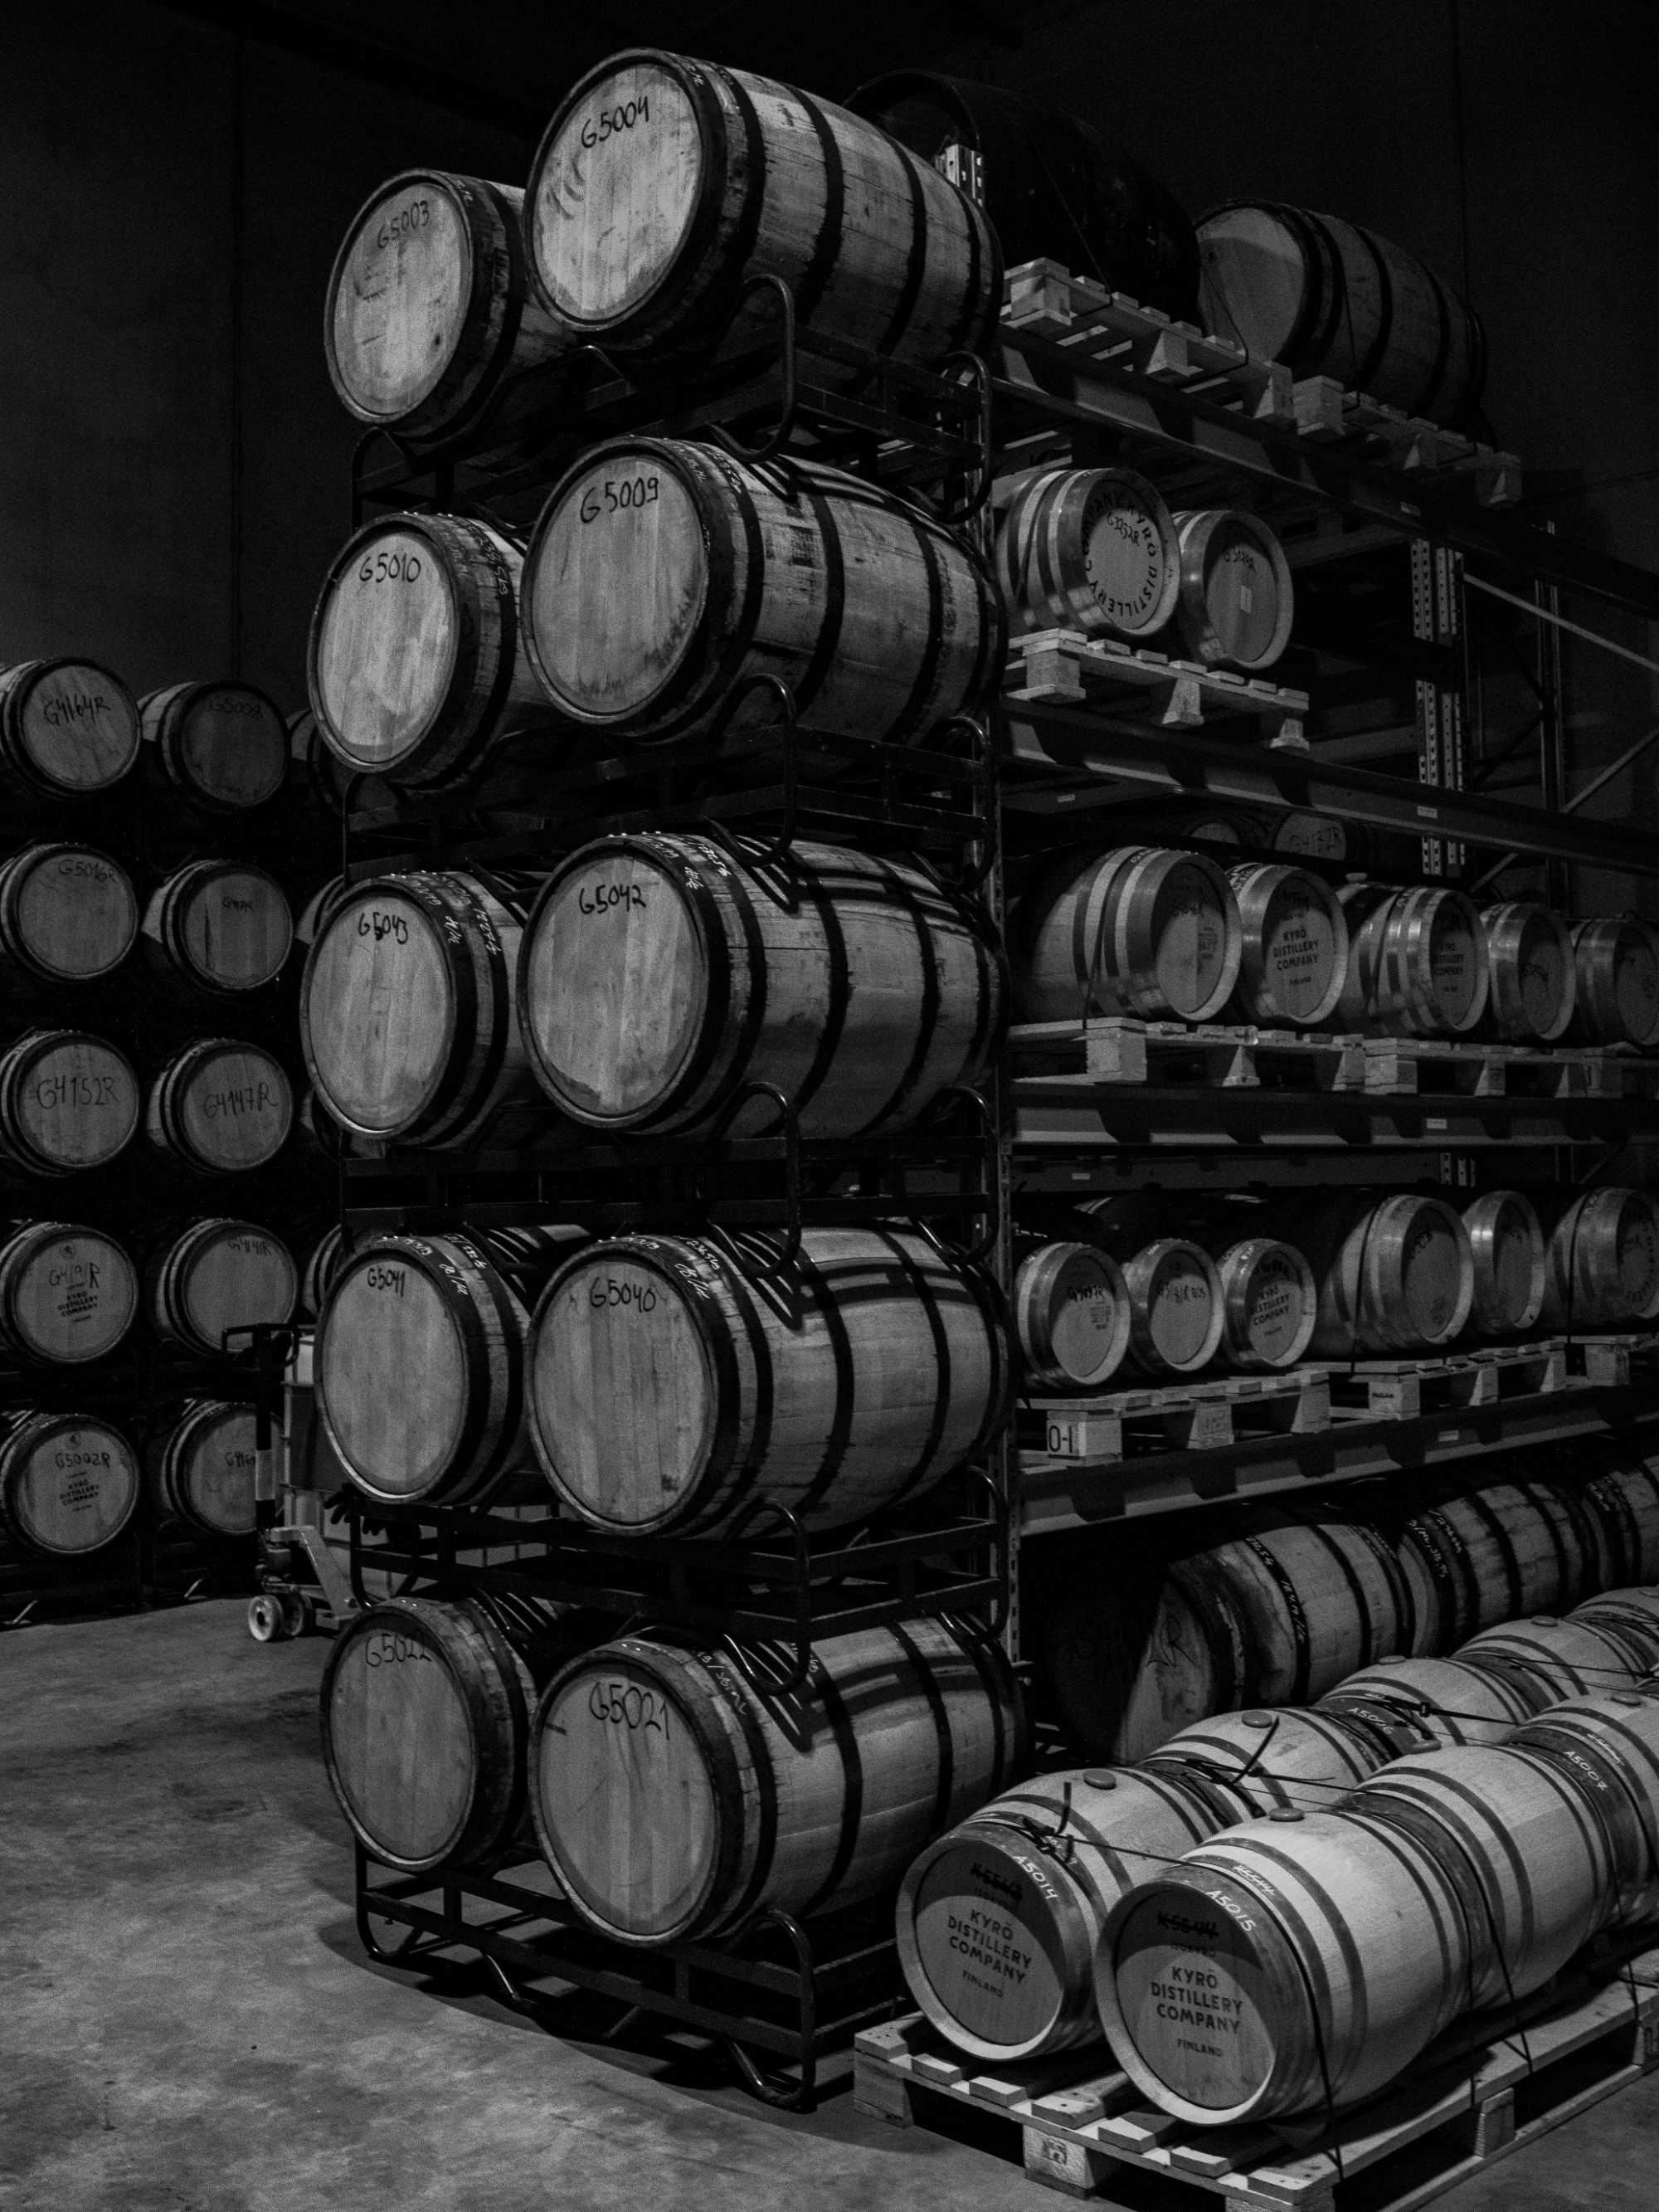 A black and white image of one of the Kyrö barrel warehouses, pictured are wooden barrels stacked atop one another.